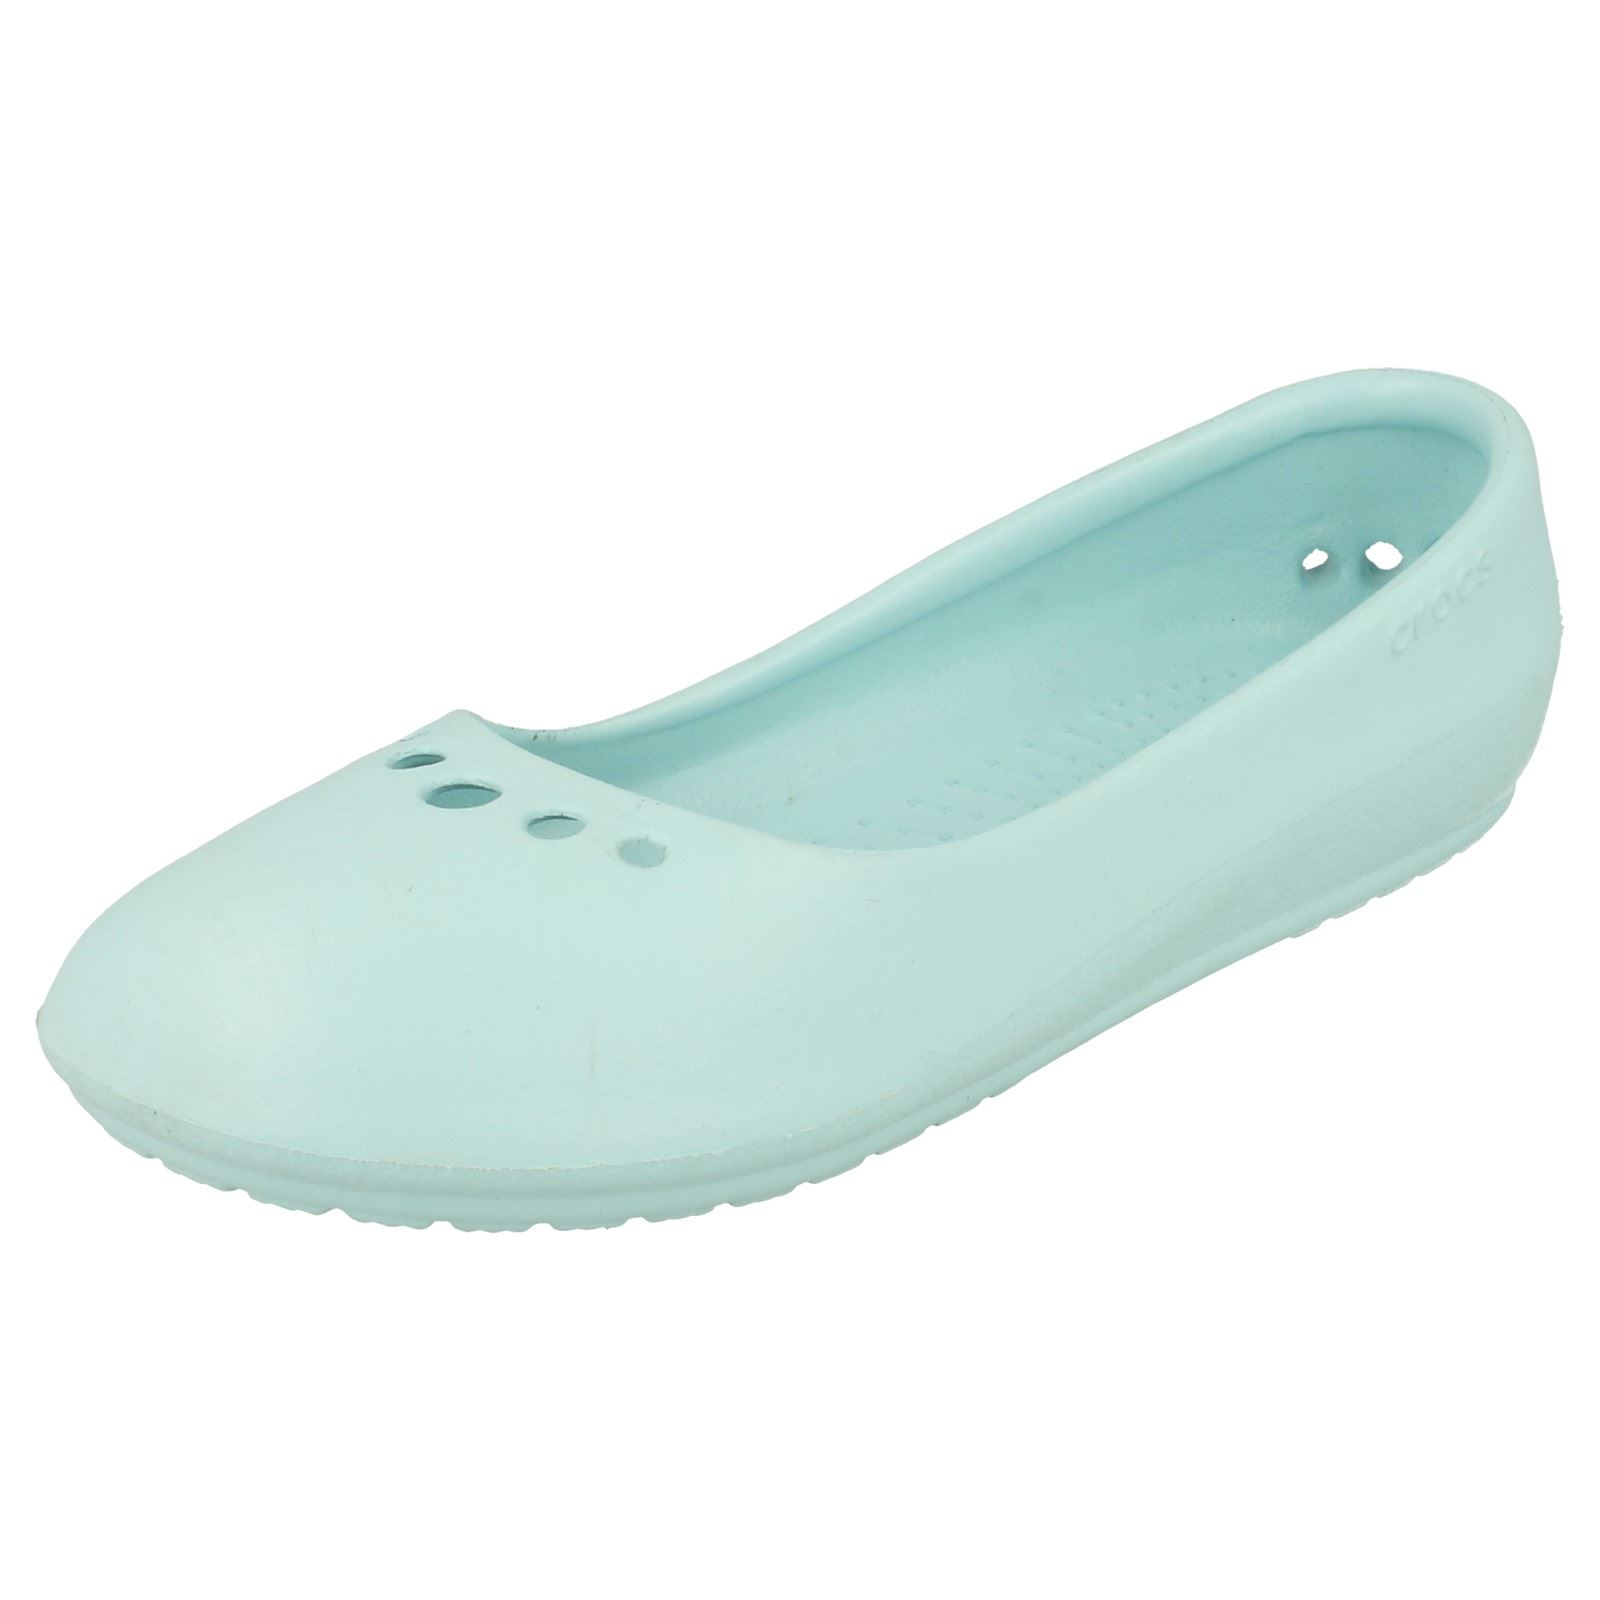 9d1685170f902b Ladies Crocs Ballerina Shoes Prima Sea Foam UK 2 Standard. About this  product. Picture 1 of 10  Picture 2 of 10 ...